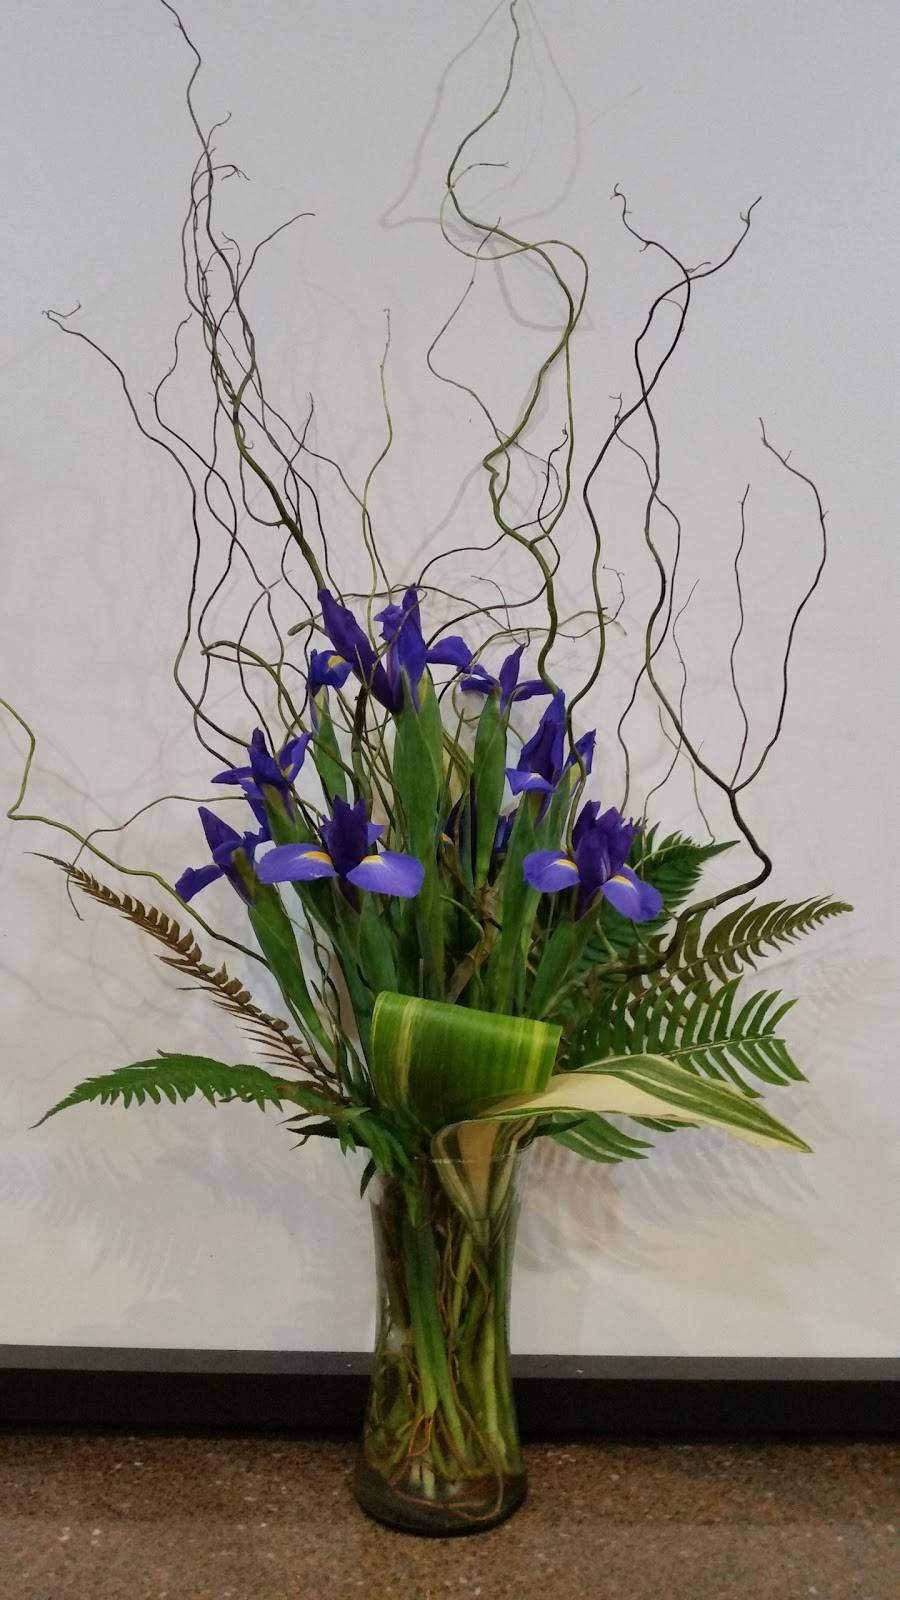 Hummingbird Floral & Gifts - florist  | Photo 7 of 9 | Address: 4001 Rice St, Shoreview, MN 55126, USA | Phone: (651) 486-0403